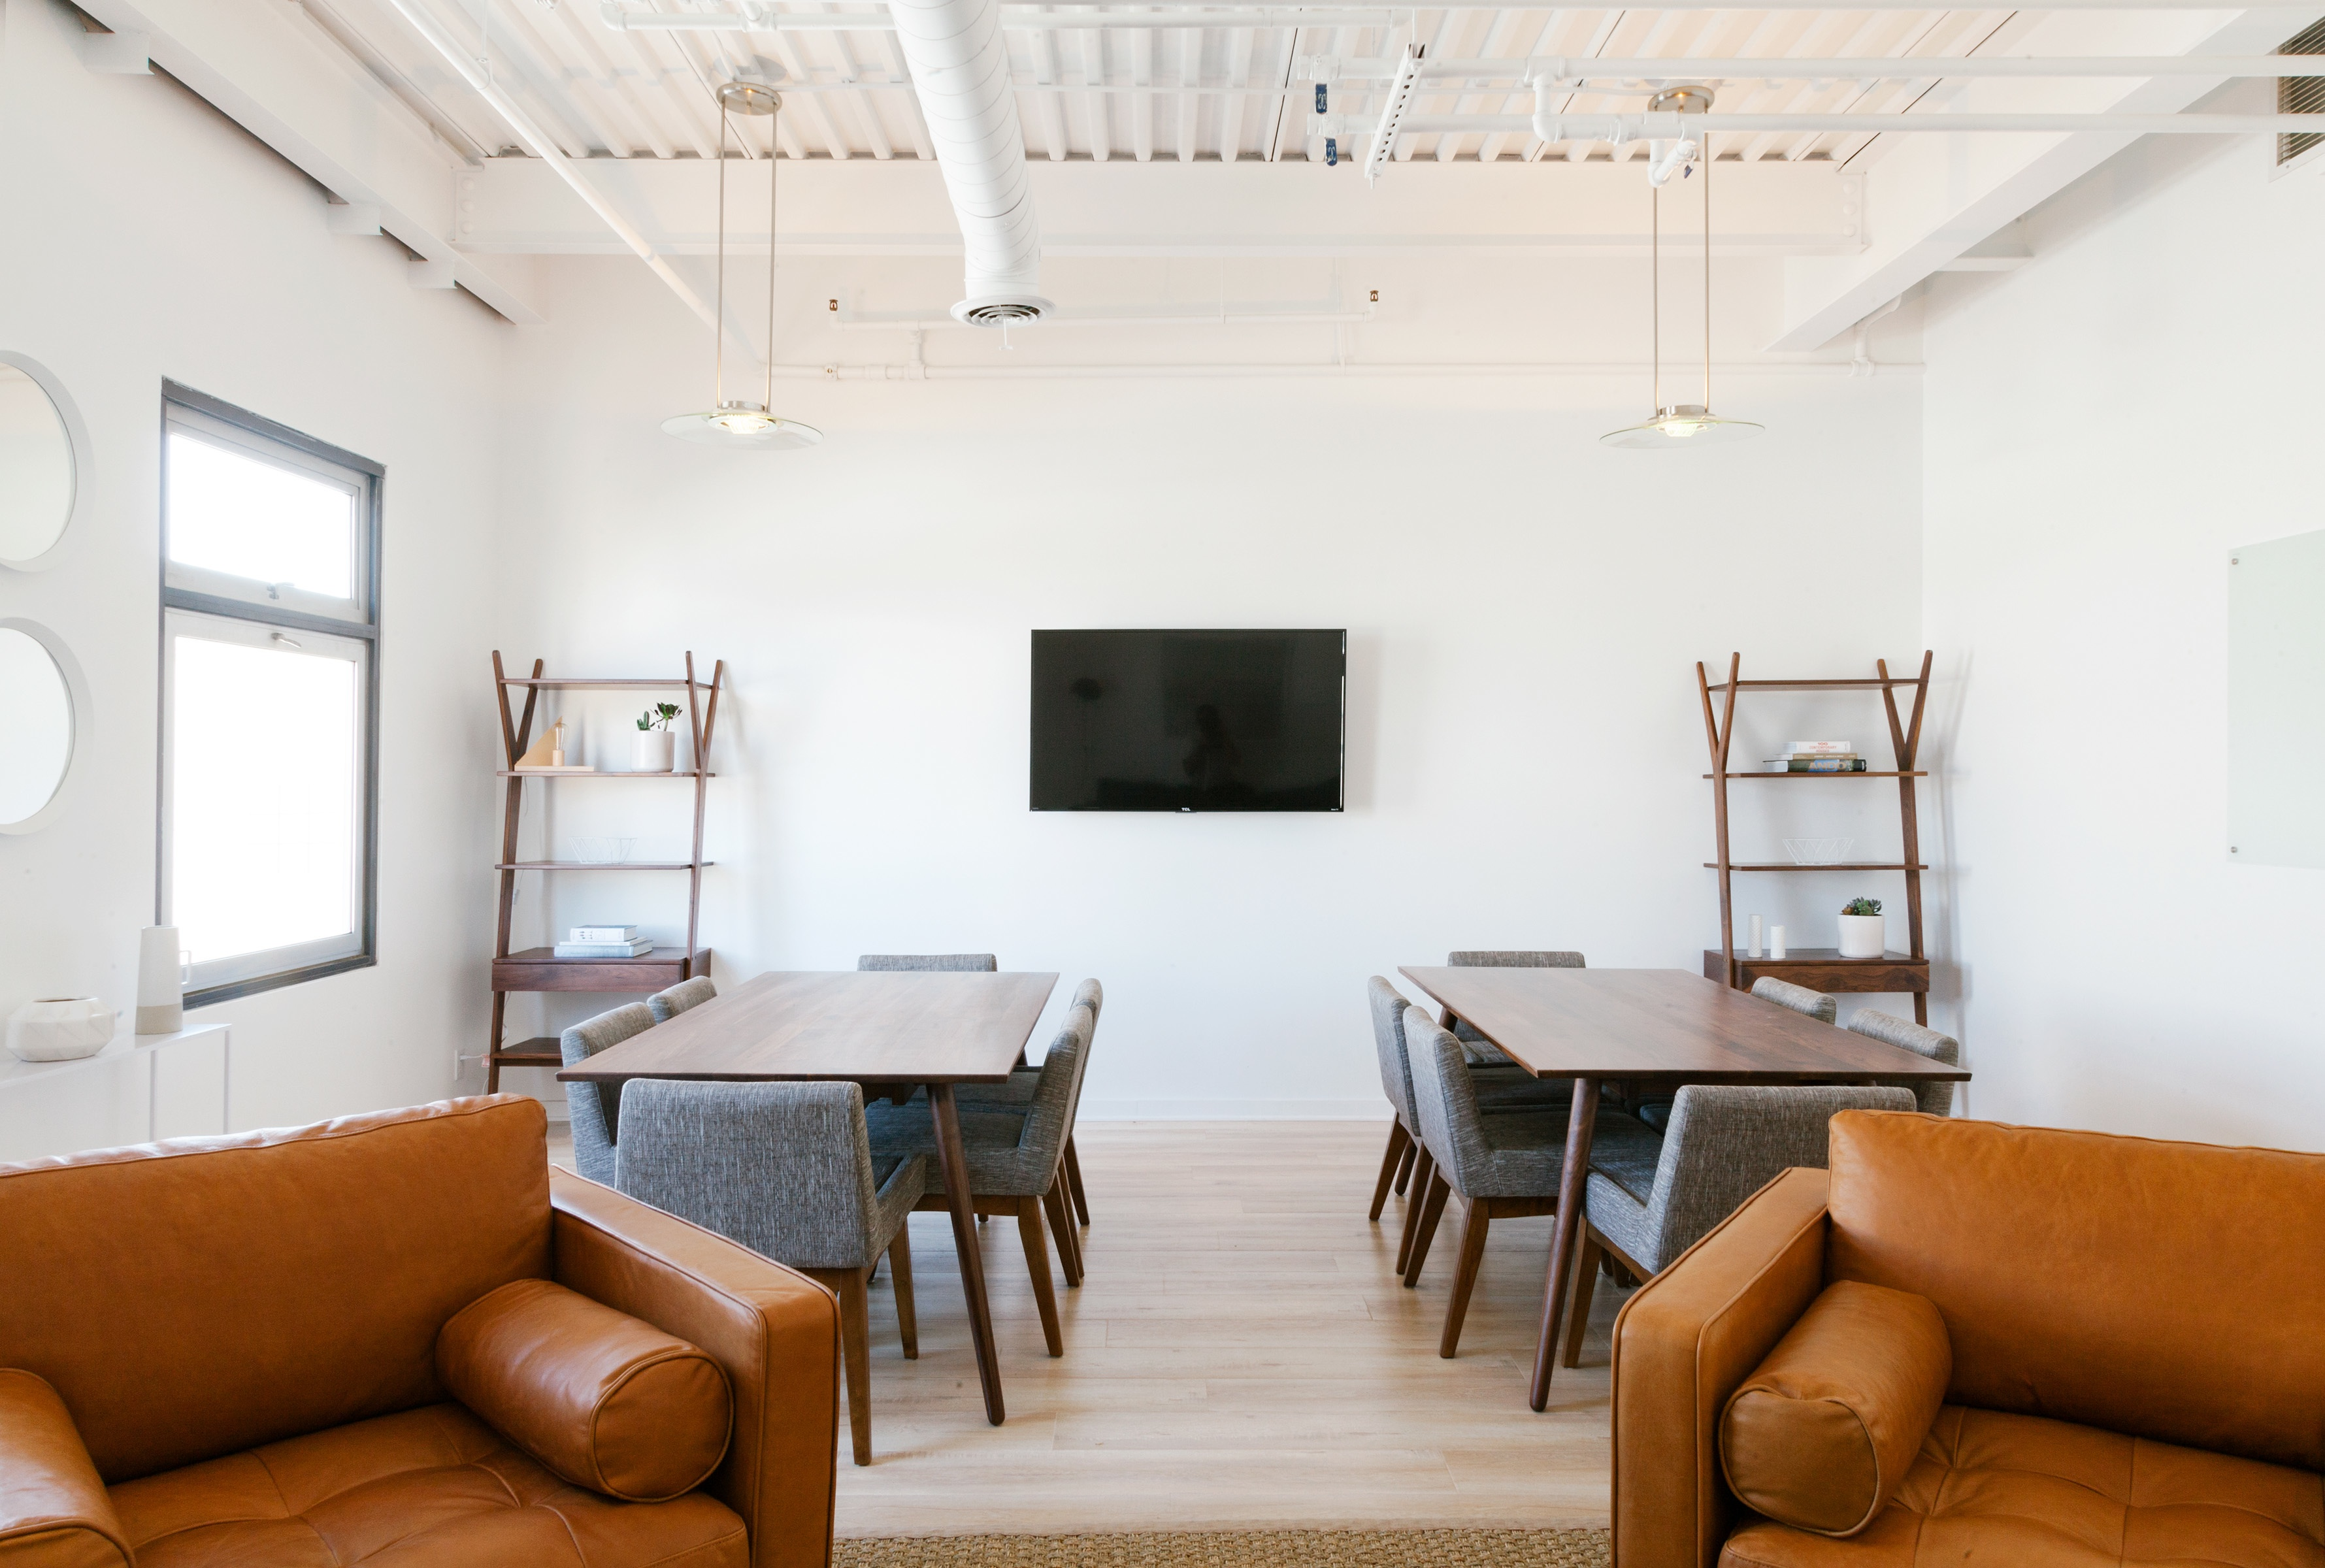 Image of meeting room by Breather 2